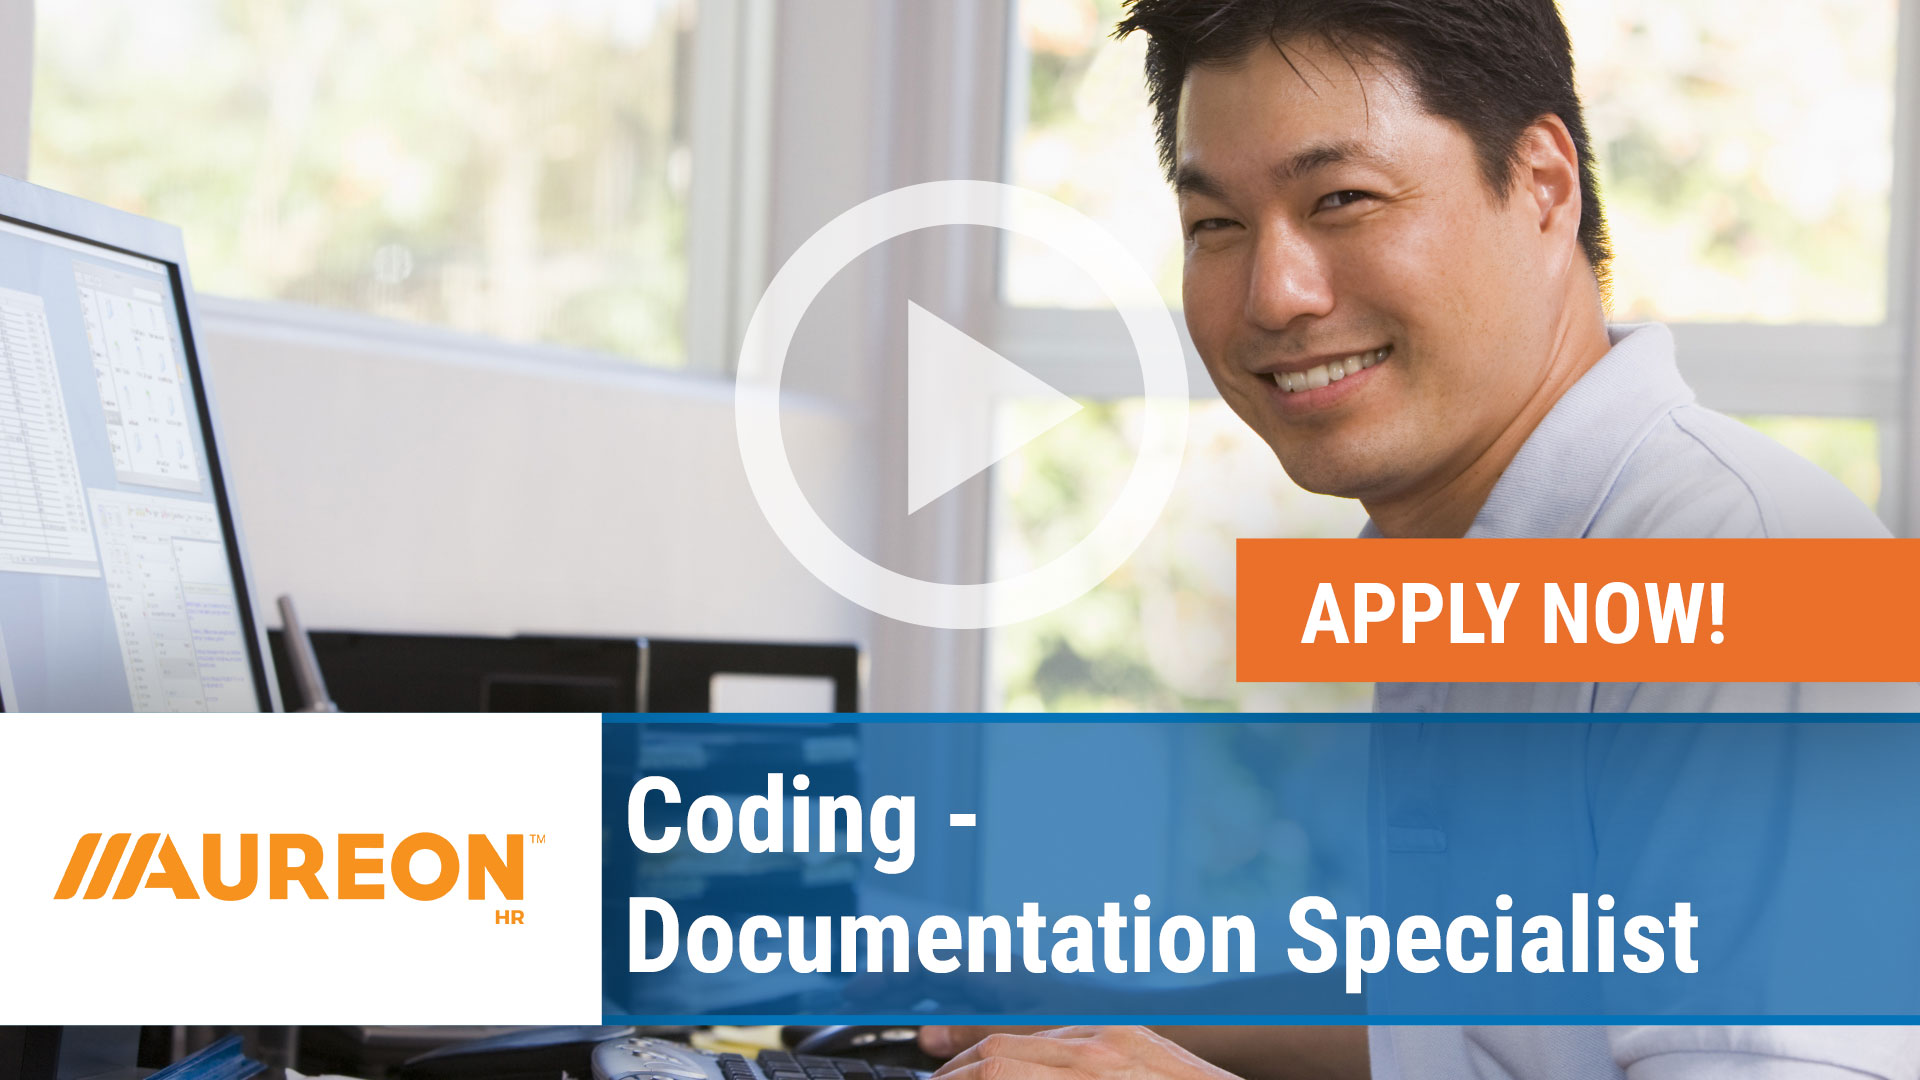 Watch our careers video for available job opening Coding - Documentation Specialist in Des Moines, IA